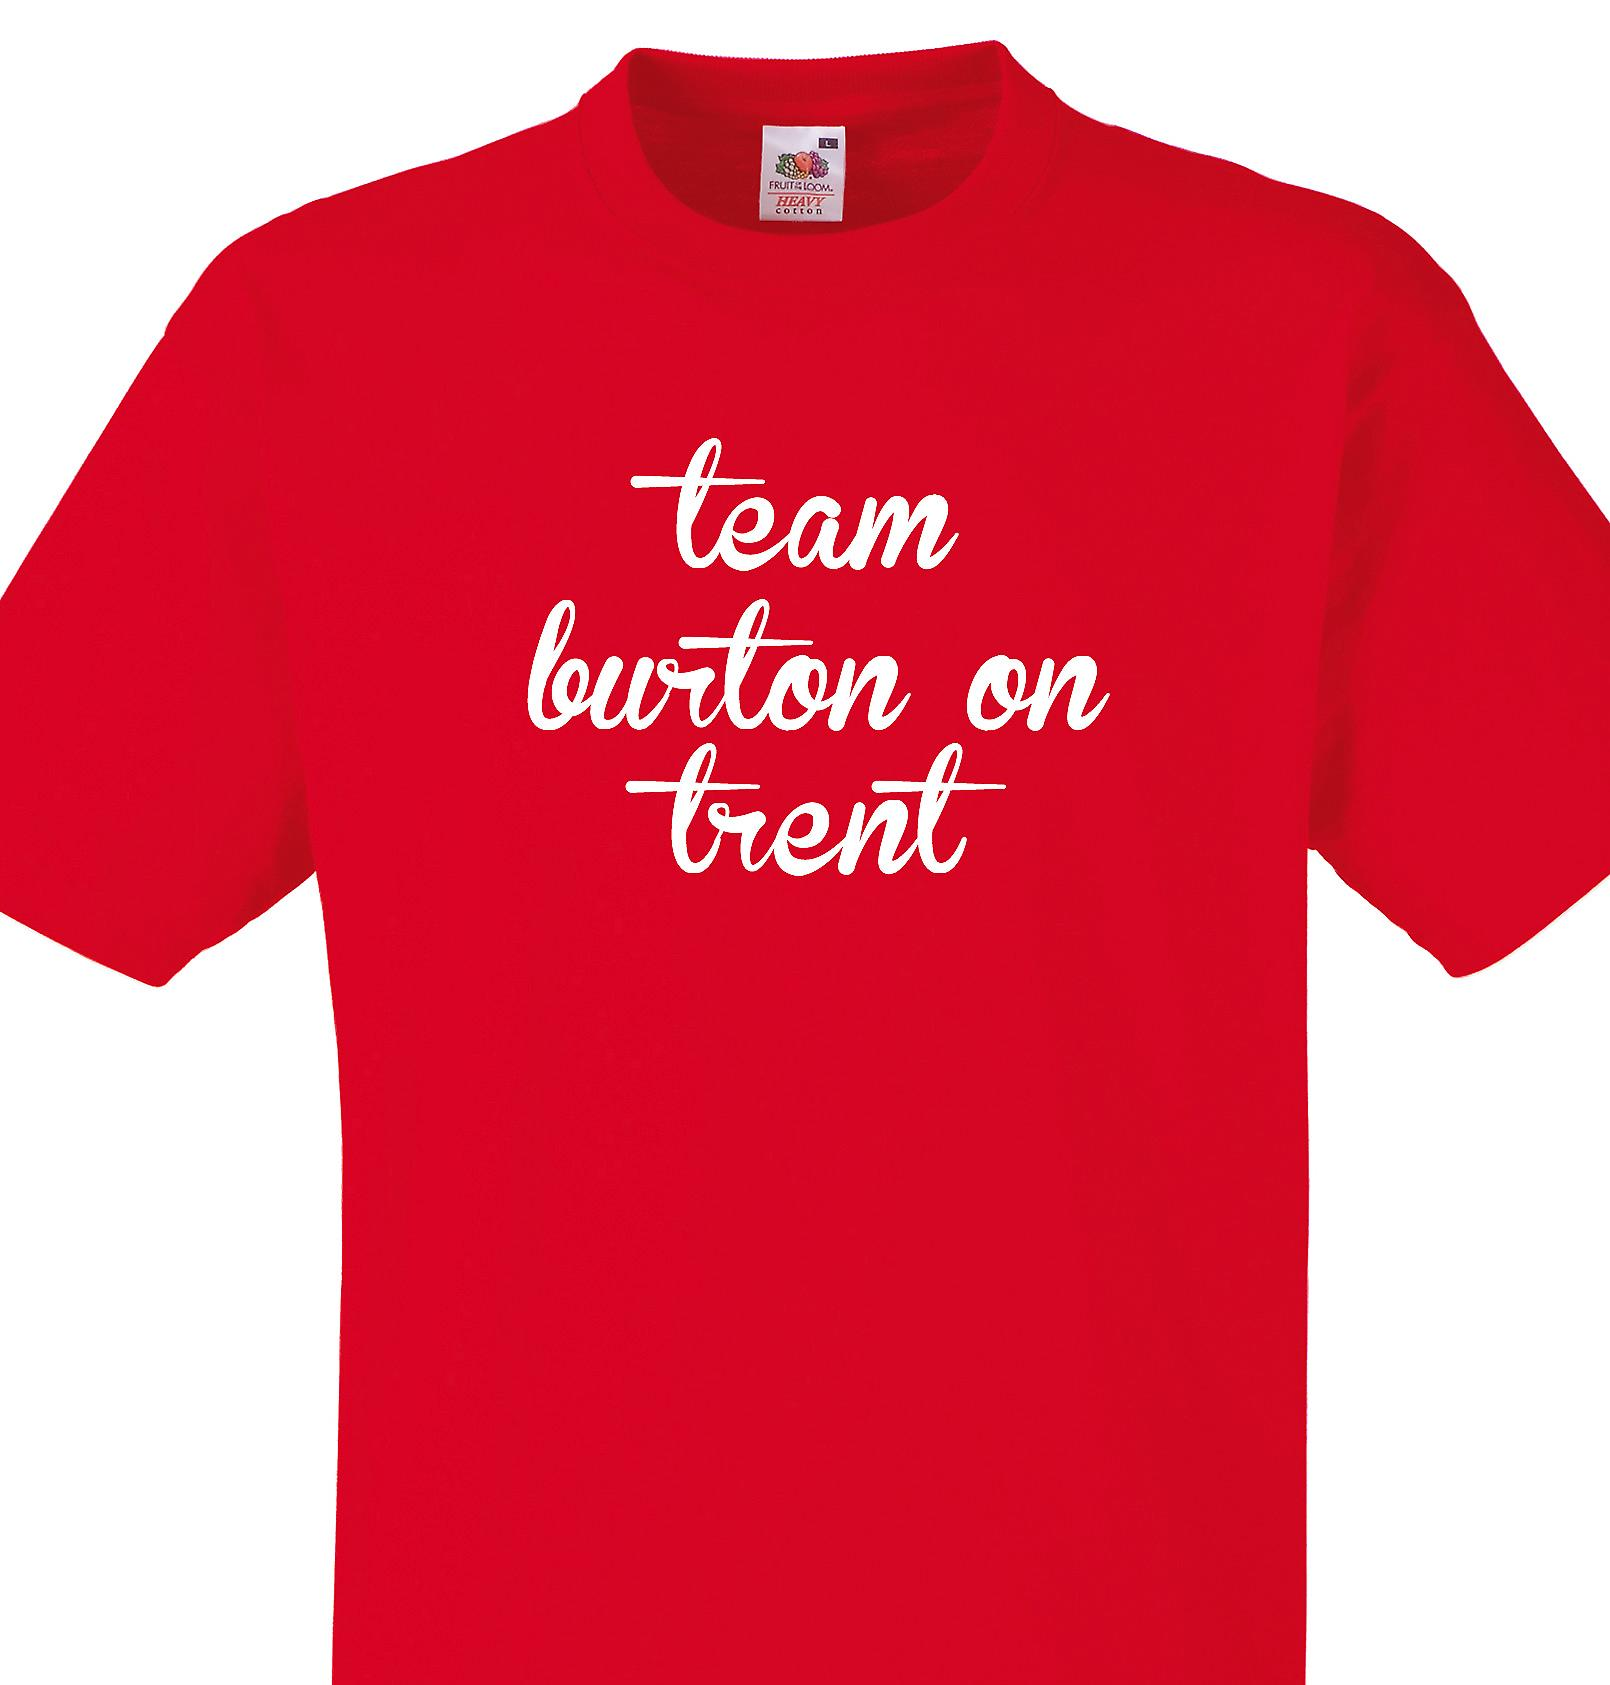 Team Burton on trent Red T shirt